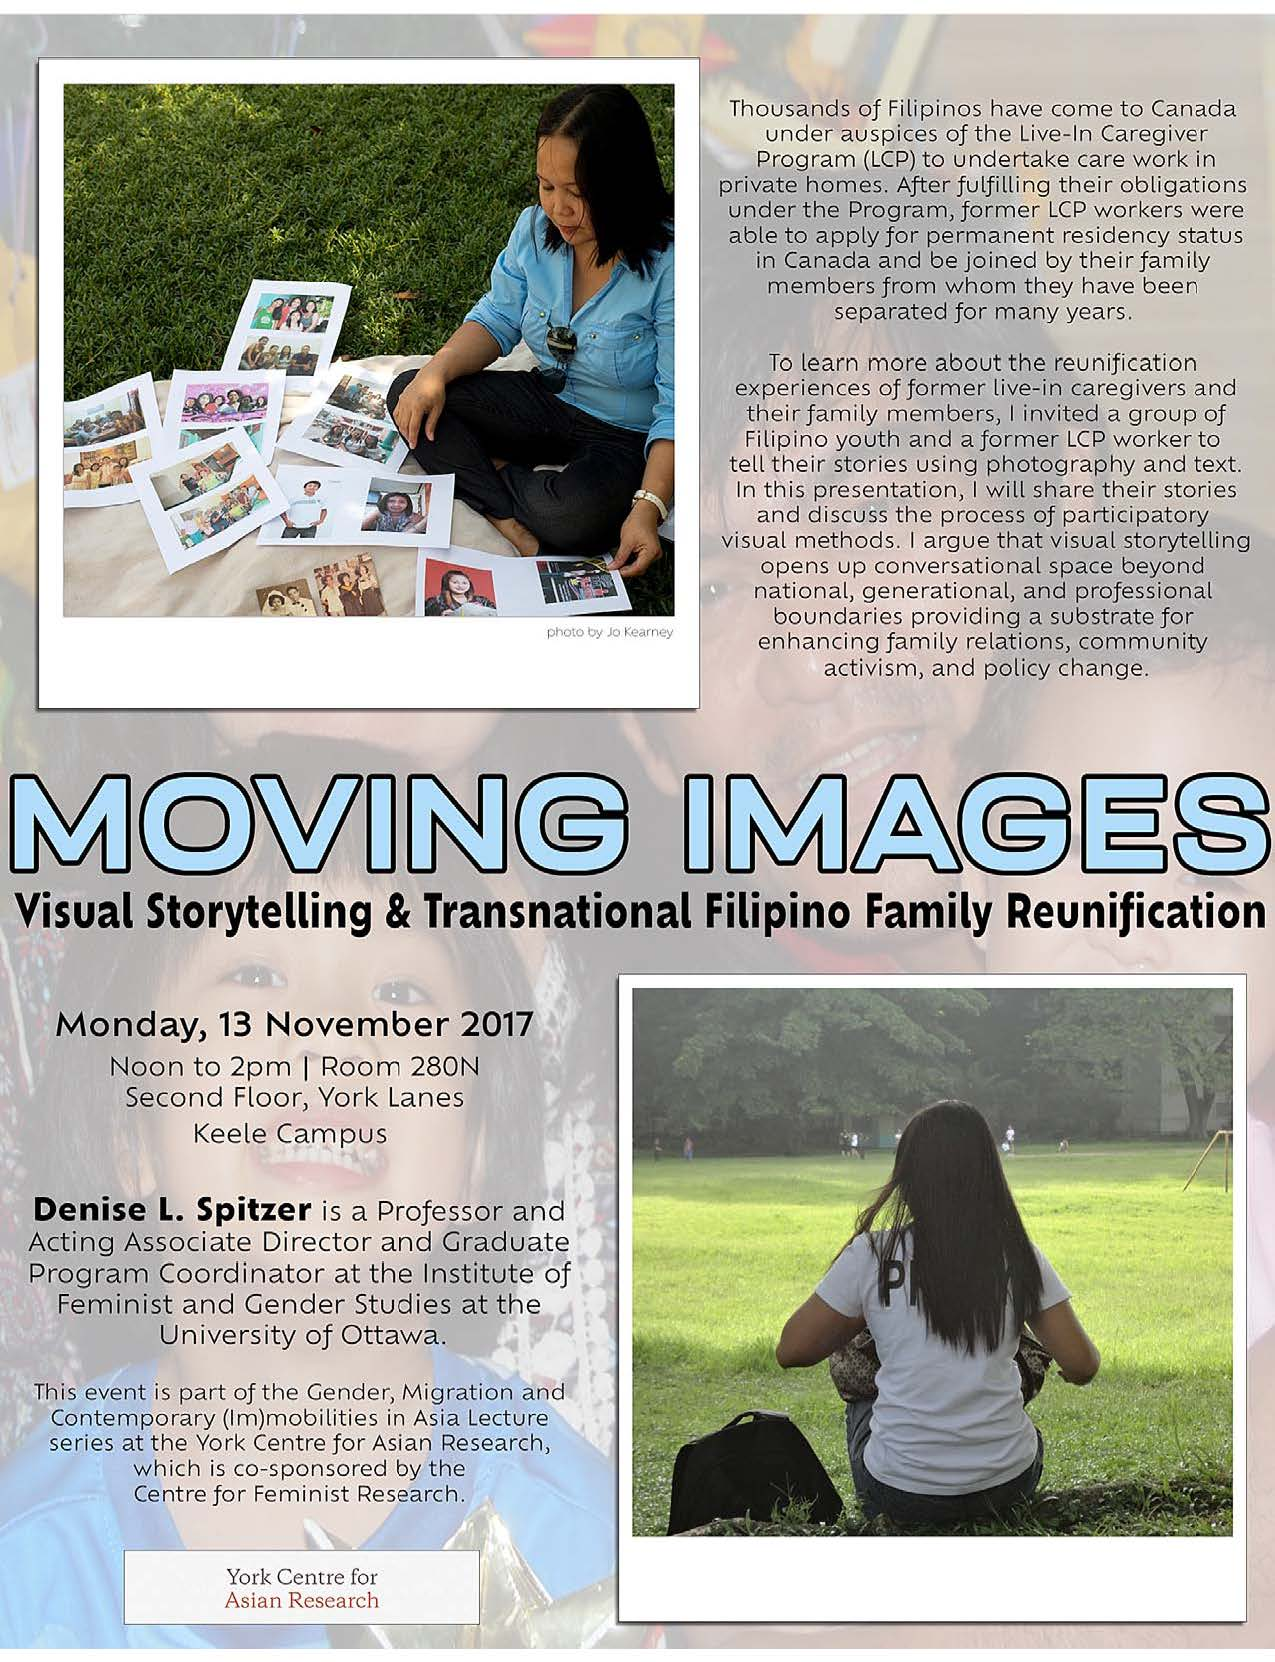 Moving Images: Visual Storytelling and Transnational Filipino Family Reunification